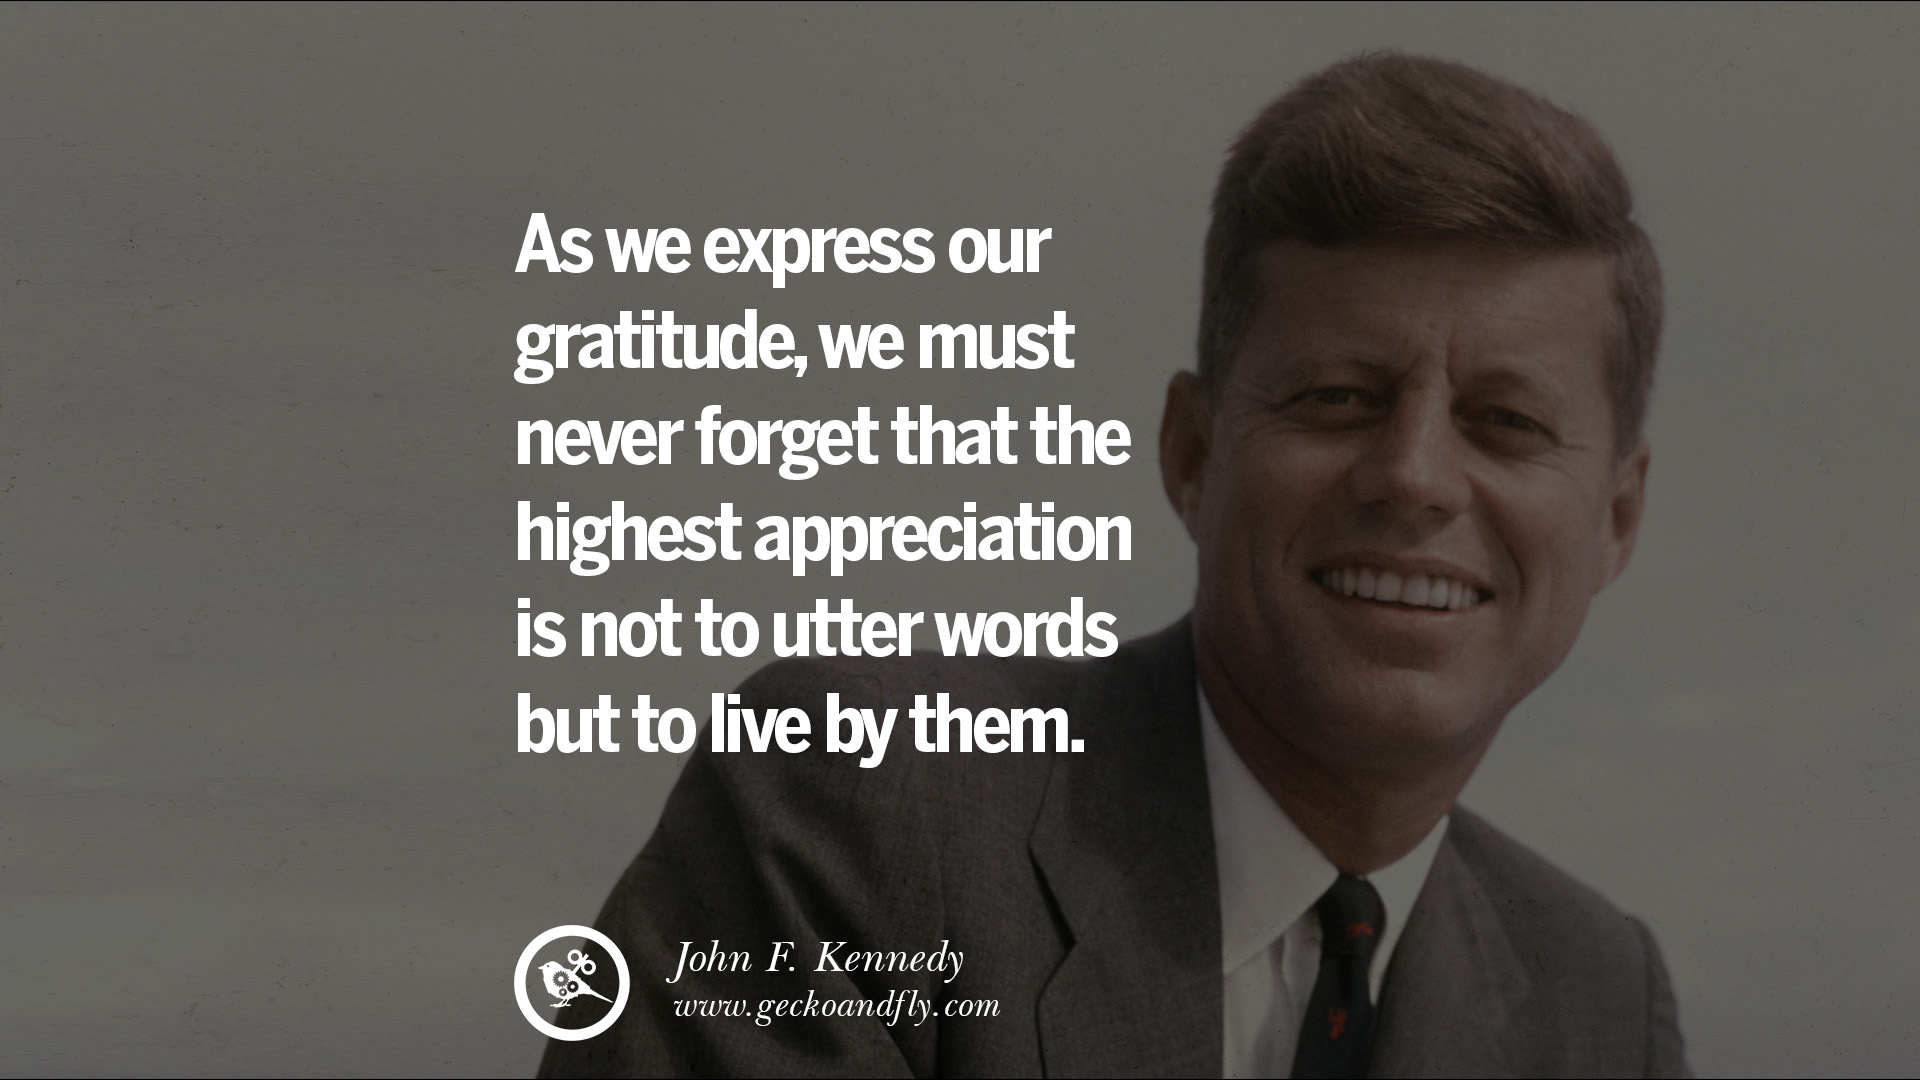 Peace Quotes 16 Famous President John Fkennedy Quotes On Freedom Peace War